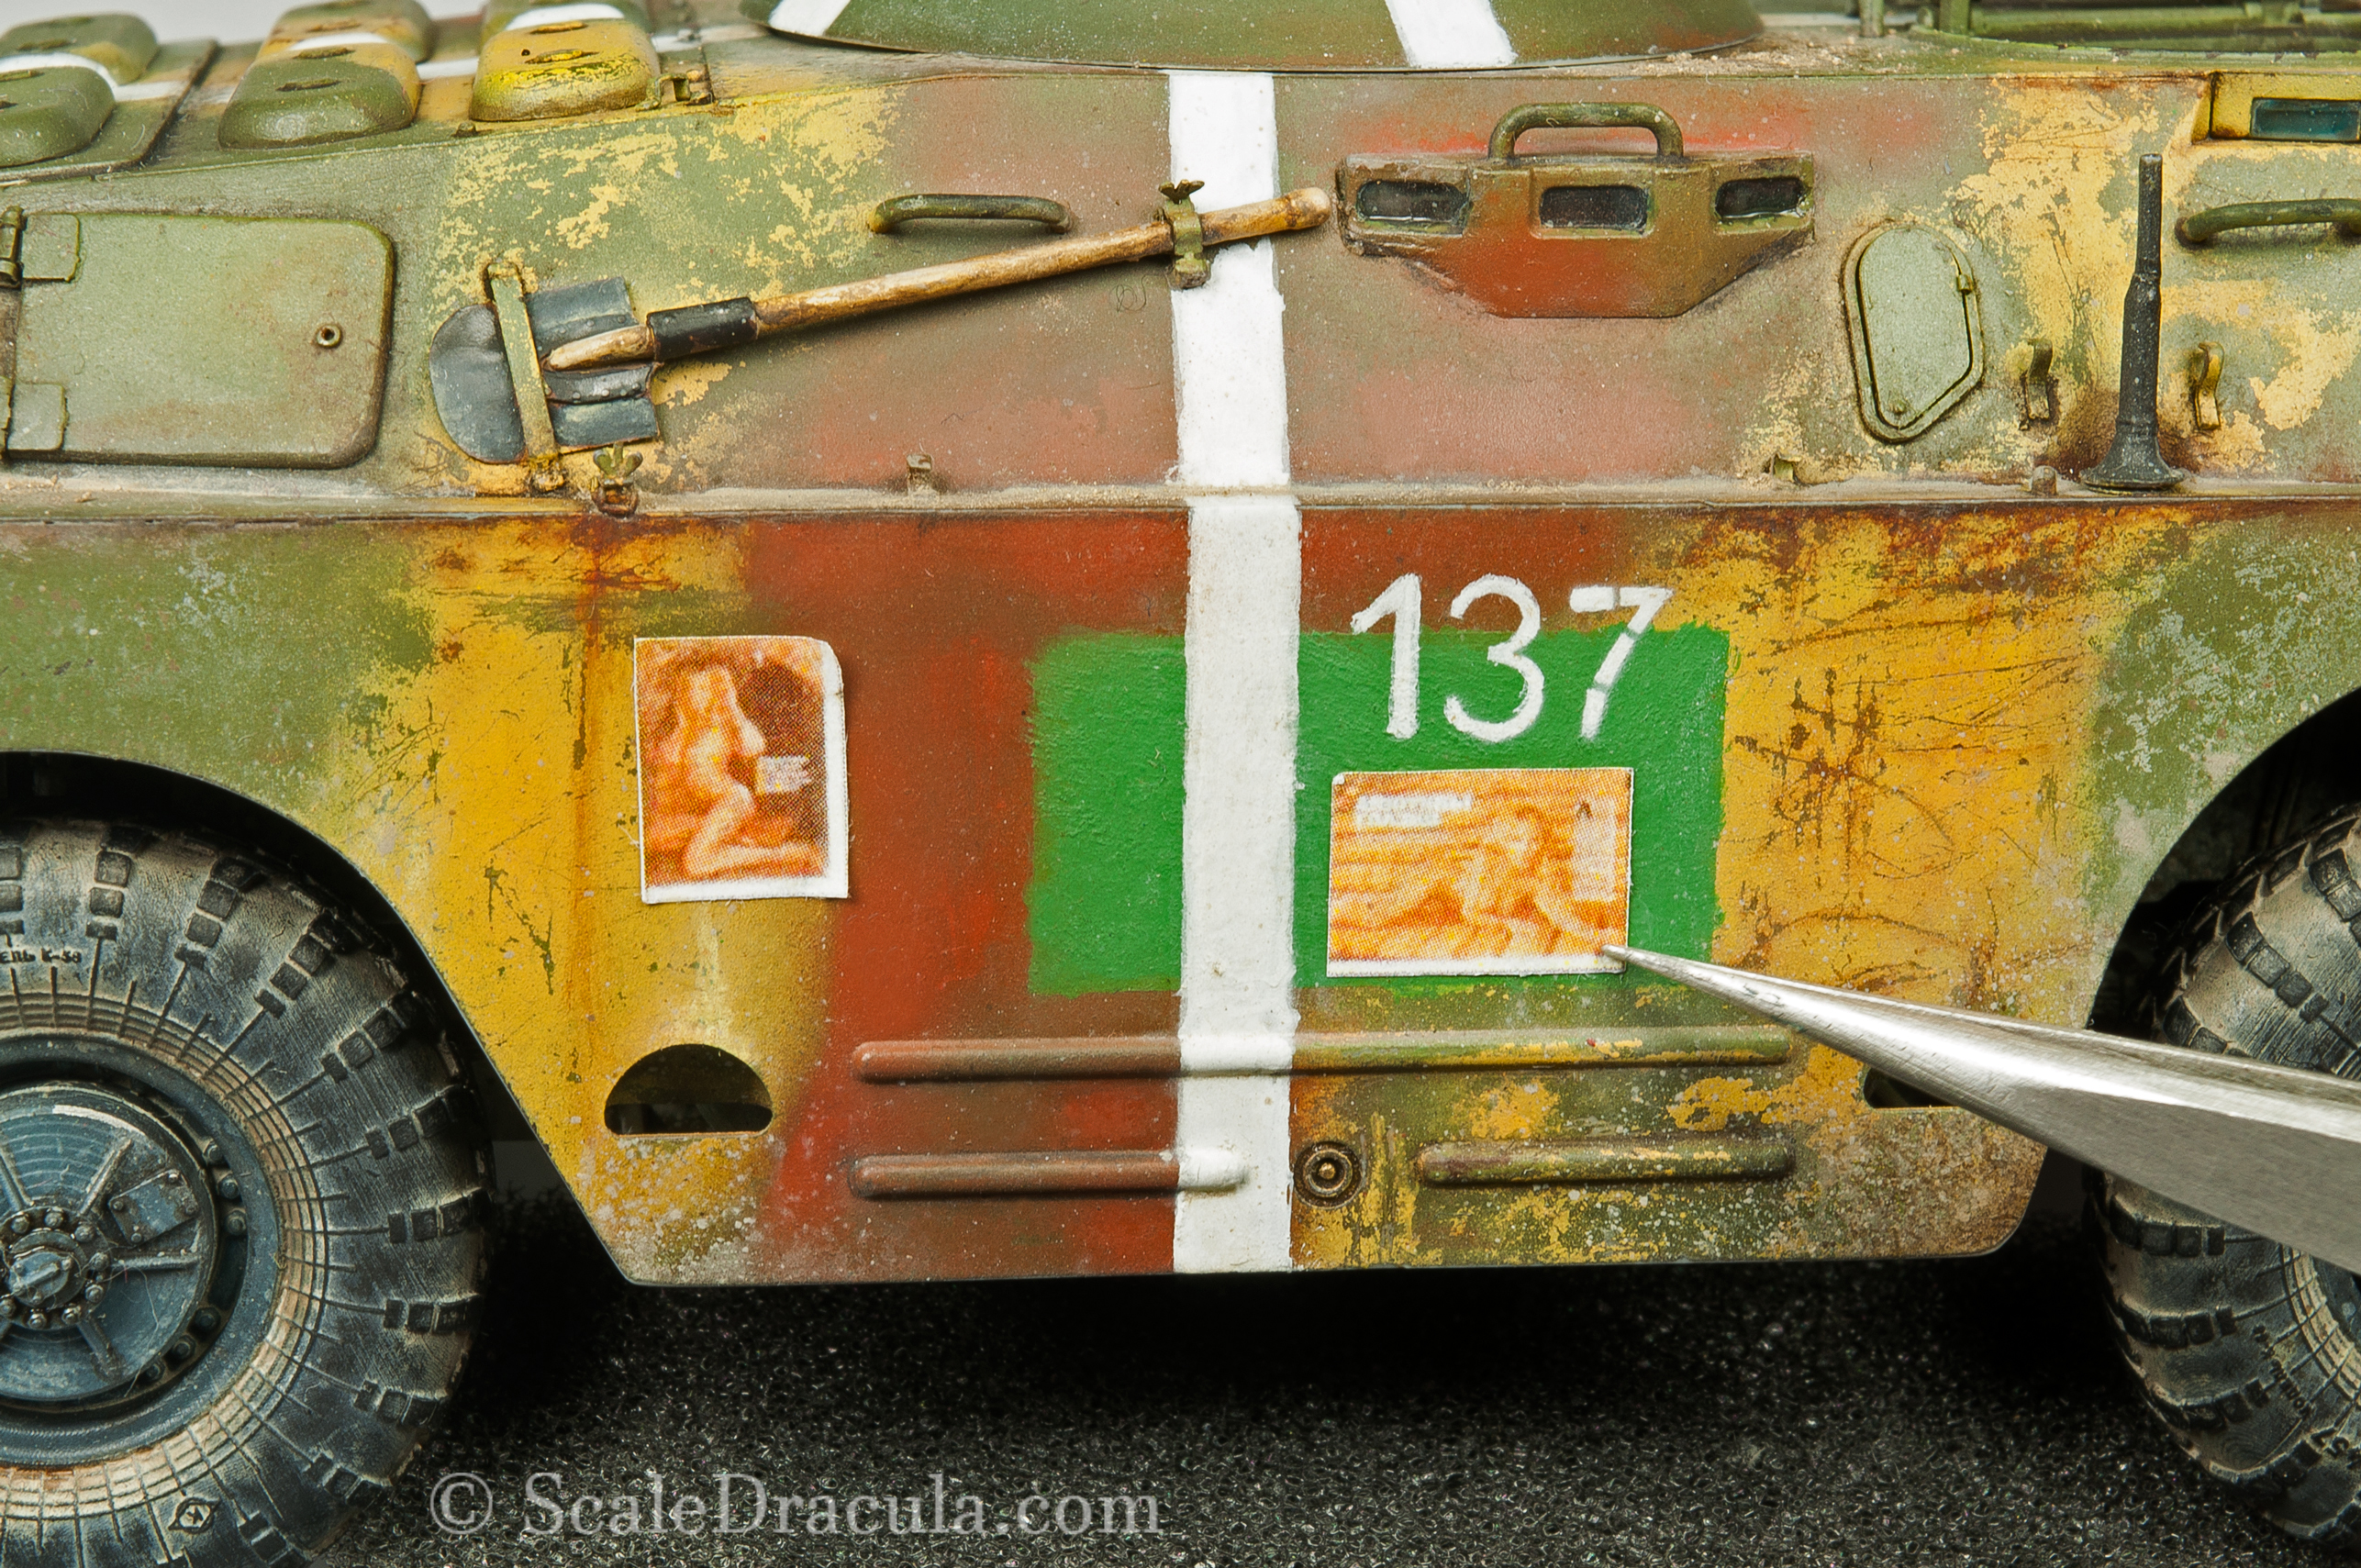 Working on the poster, BRDM-2 by Trumpeter